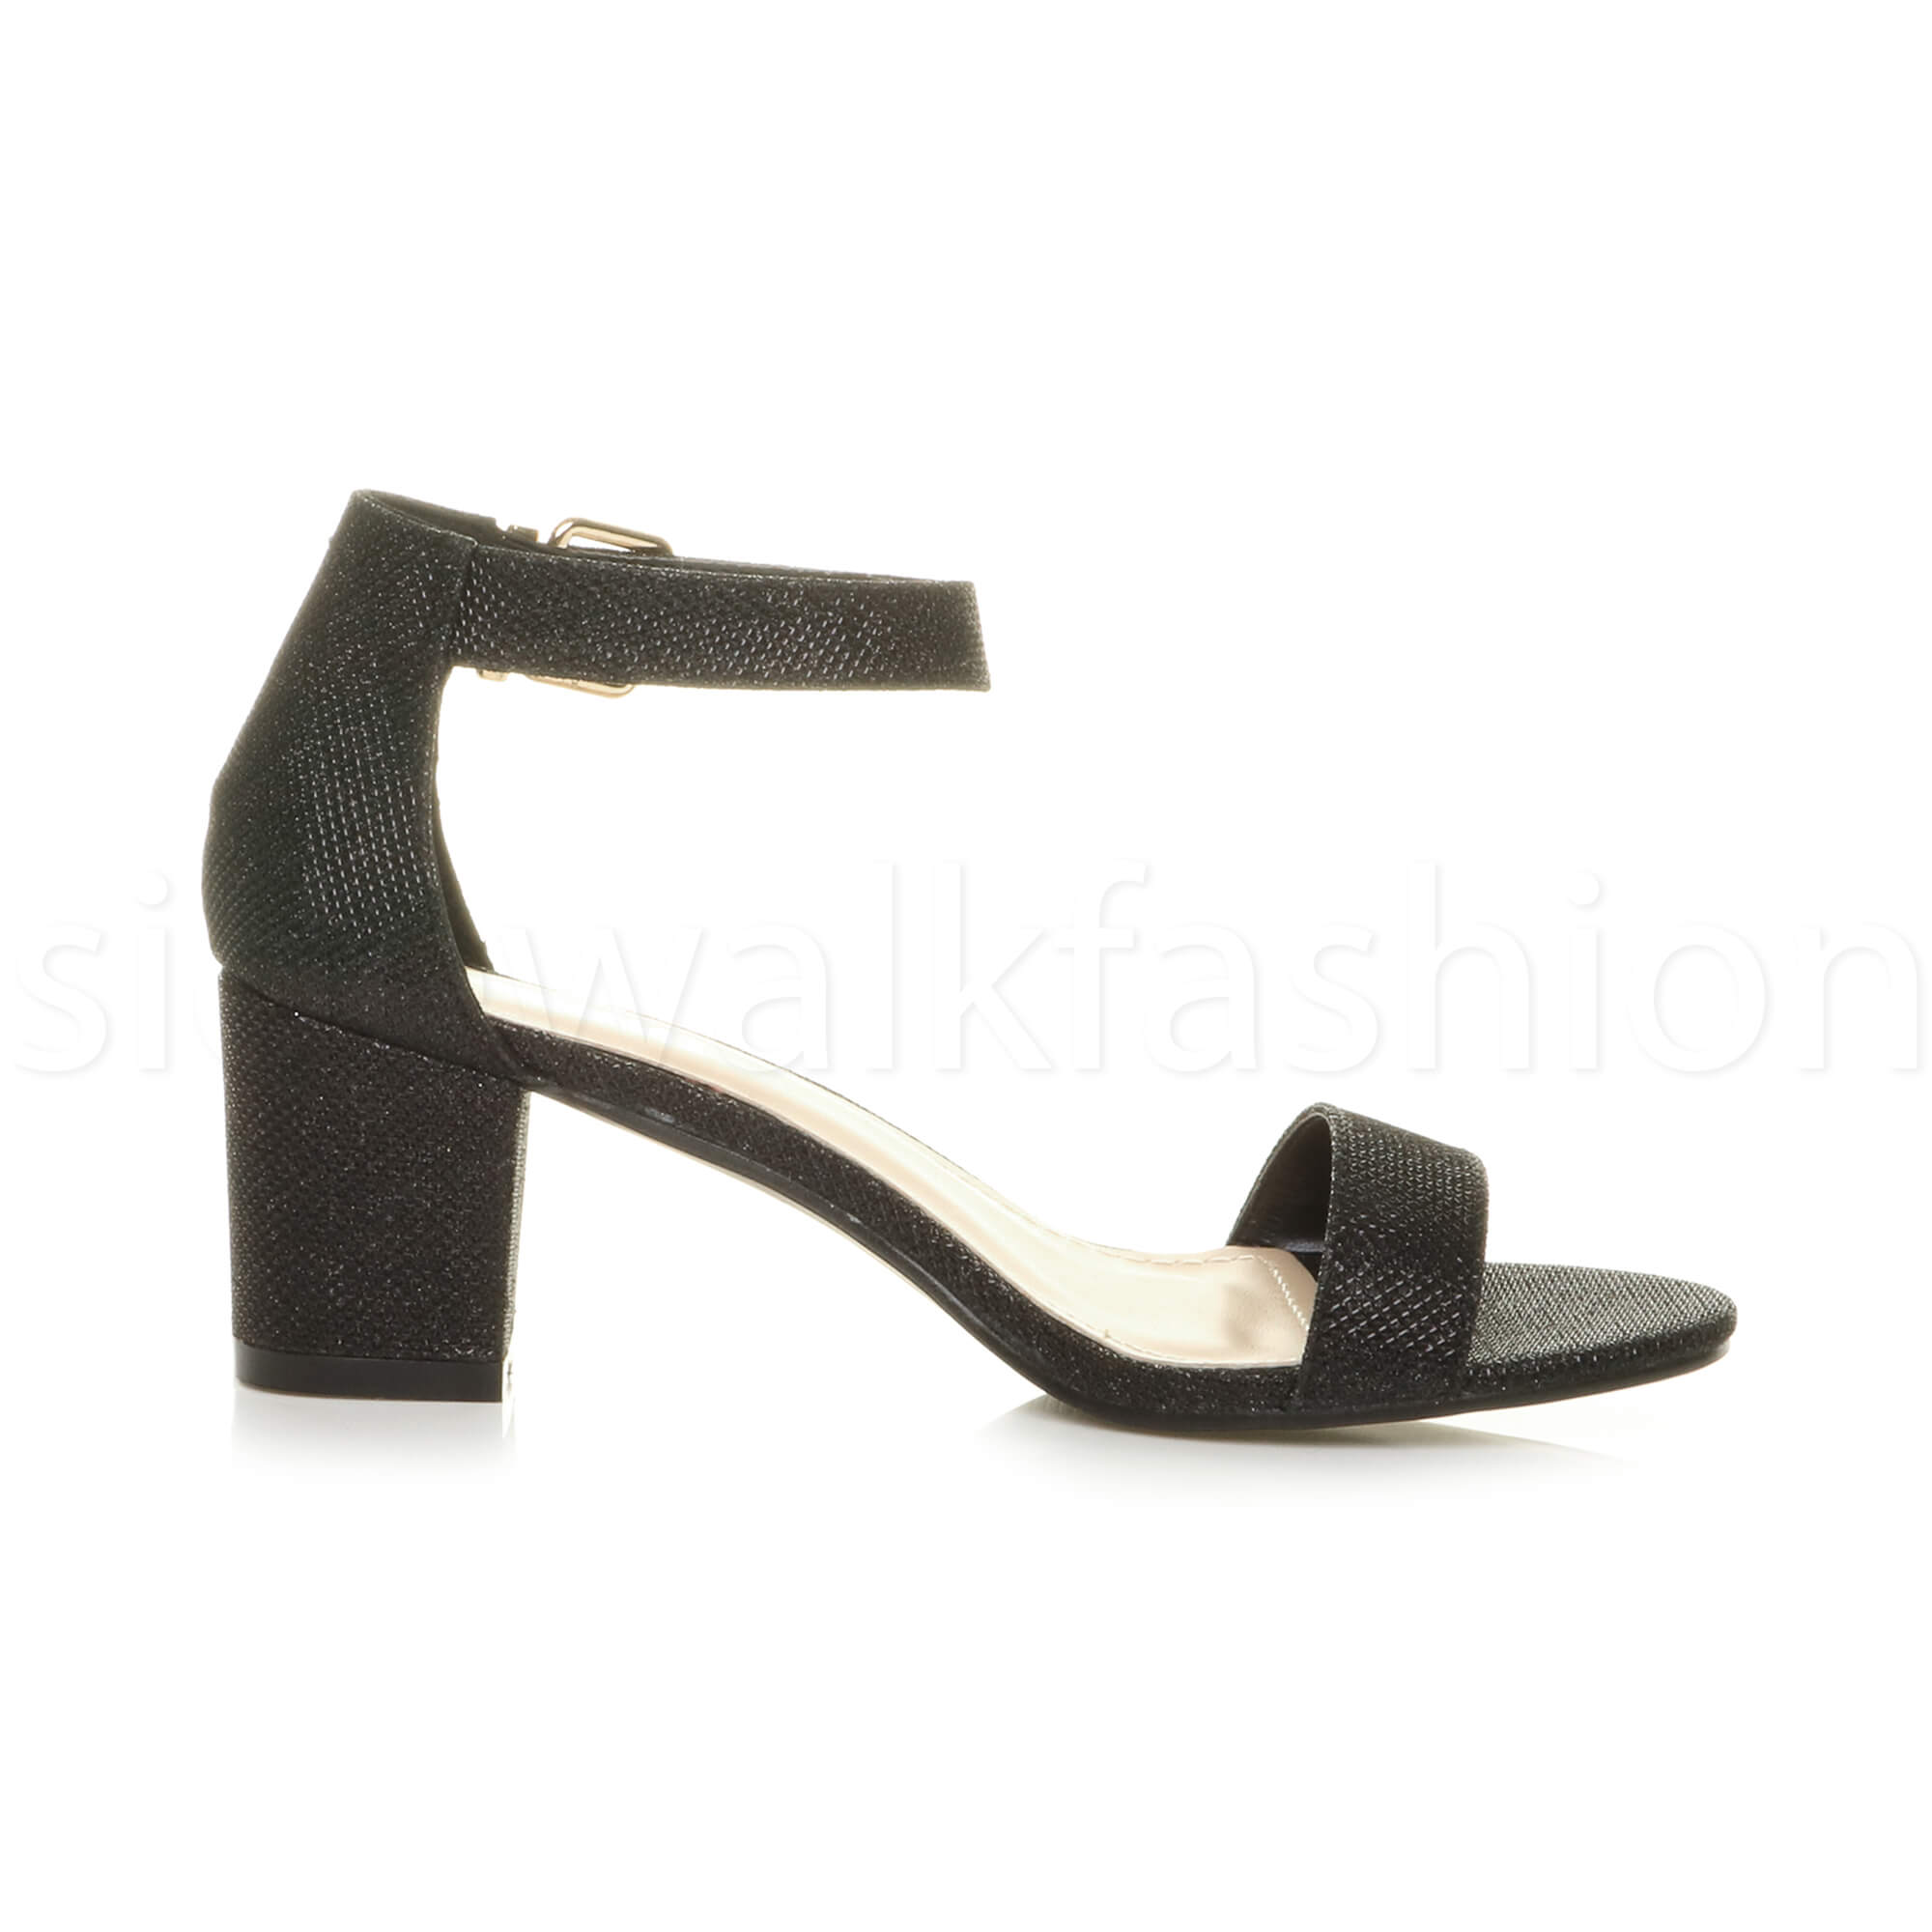 Womens-ladies-low-mid-heel-buckle-ankle-strap-peep-toe-party-strappy-sandal-size thumbnail 18